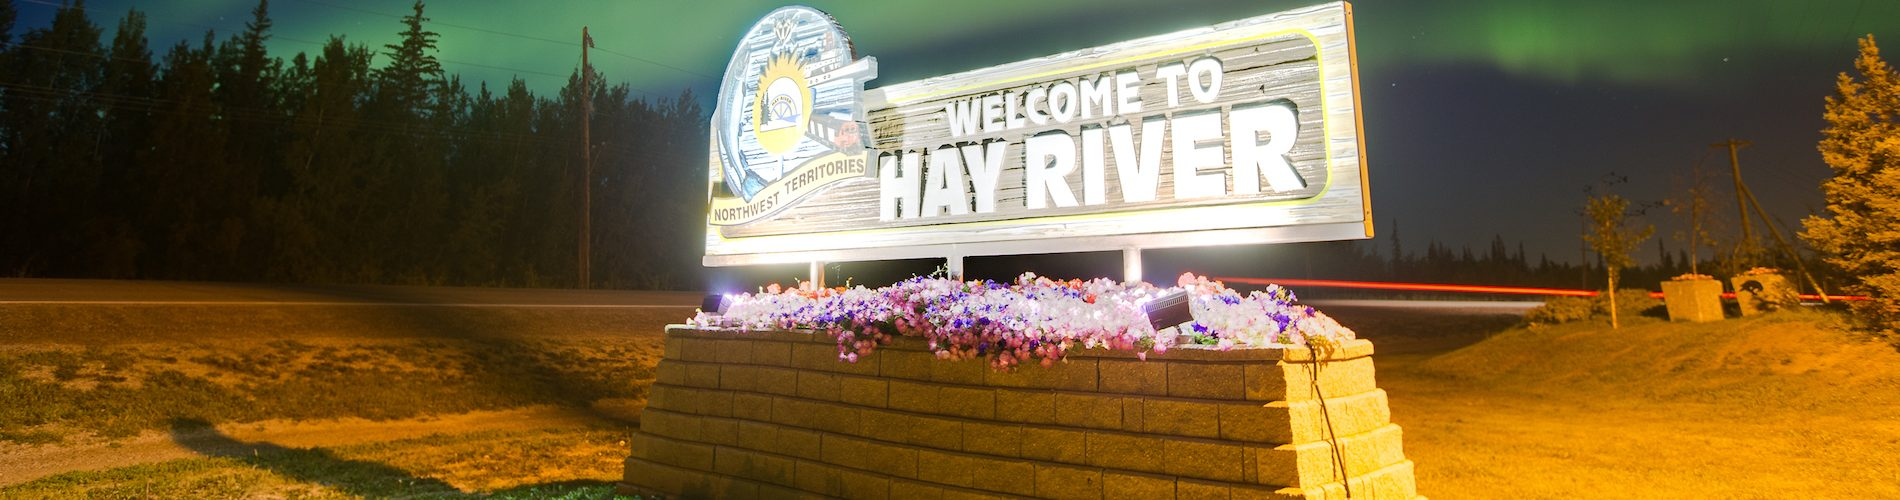 welcome to hay river sign